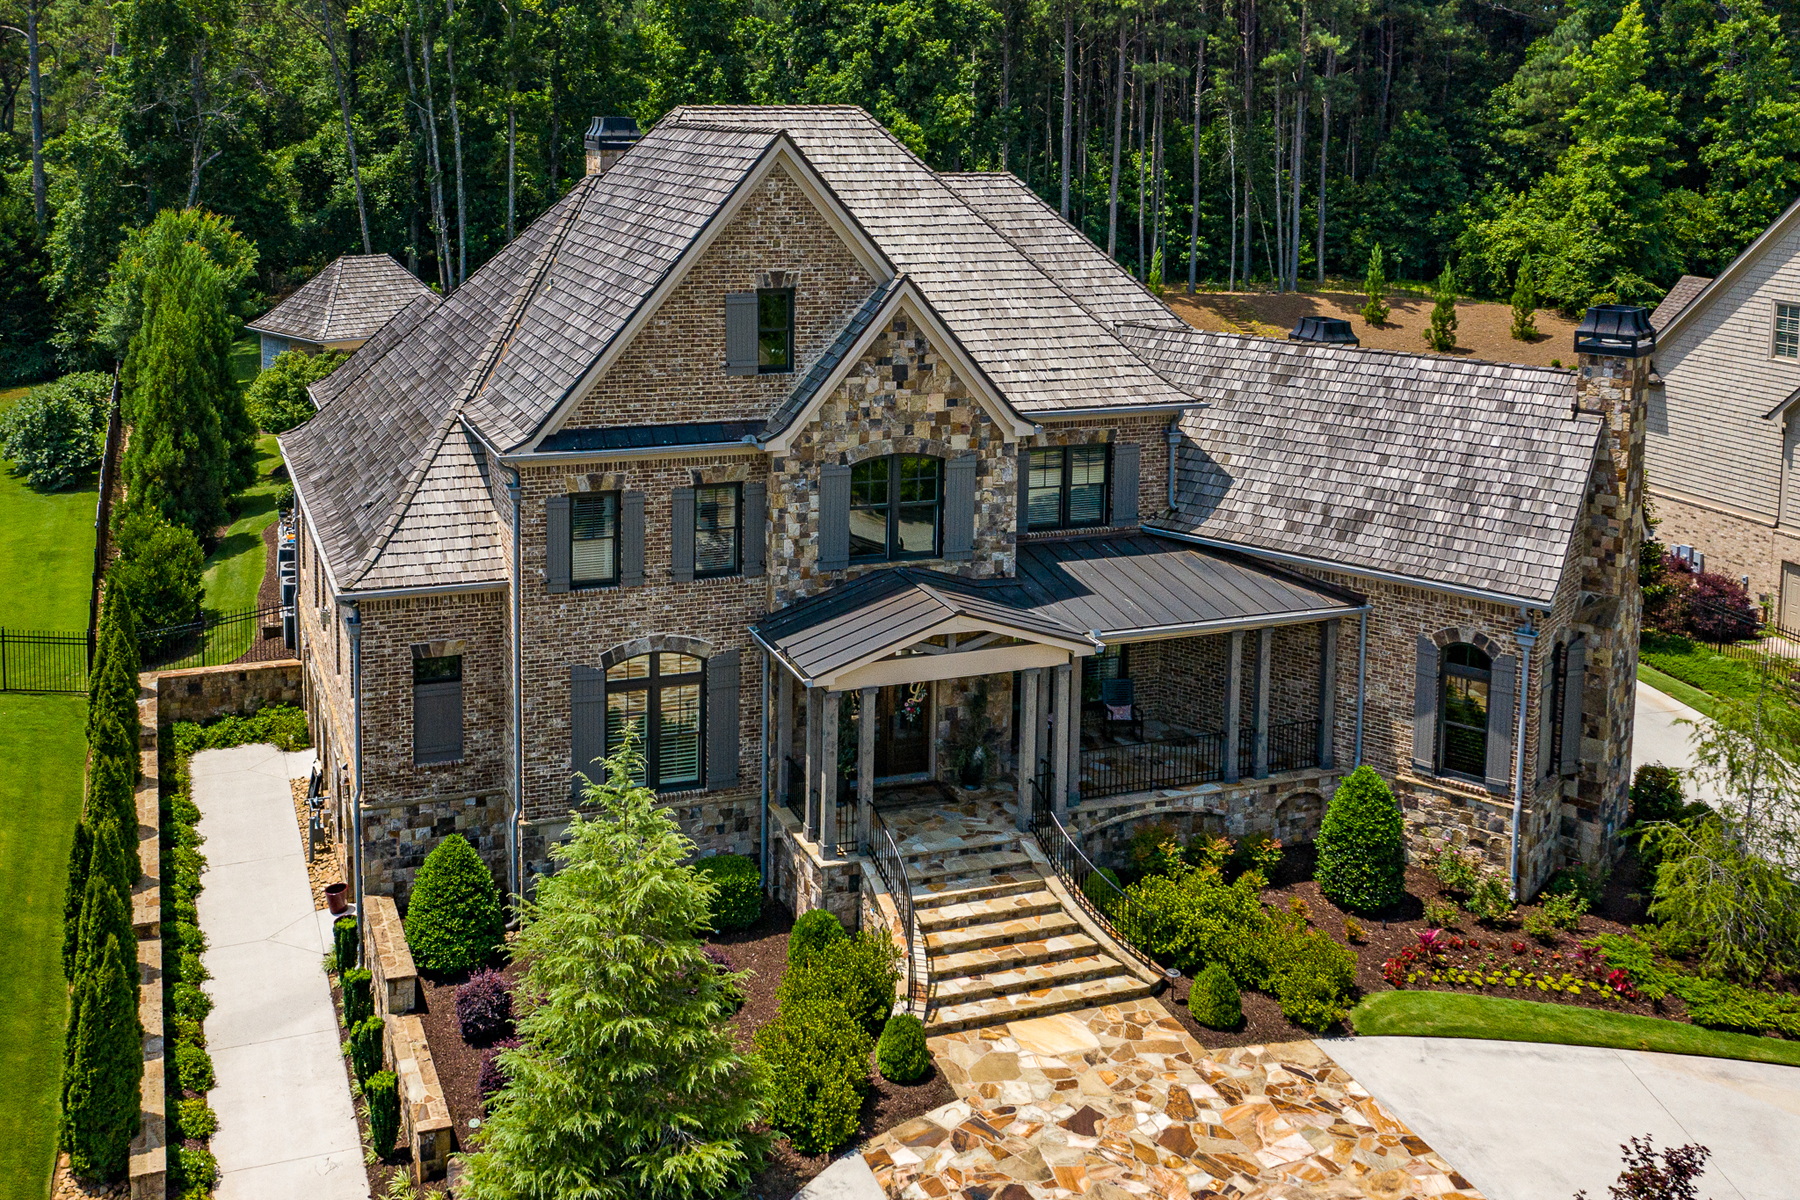 Single Family Homes for Active at Designer Showplace in Newhaven with Every Amenity Imaginable 325 Newhaven Drive Fayetteville, Georgia 30215 United States